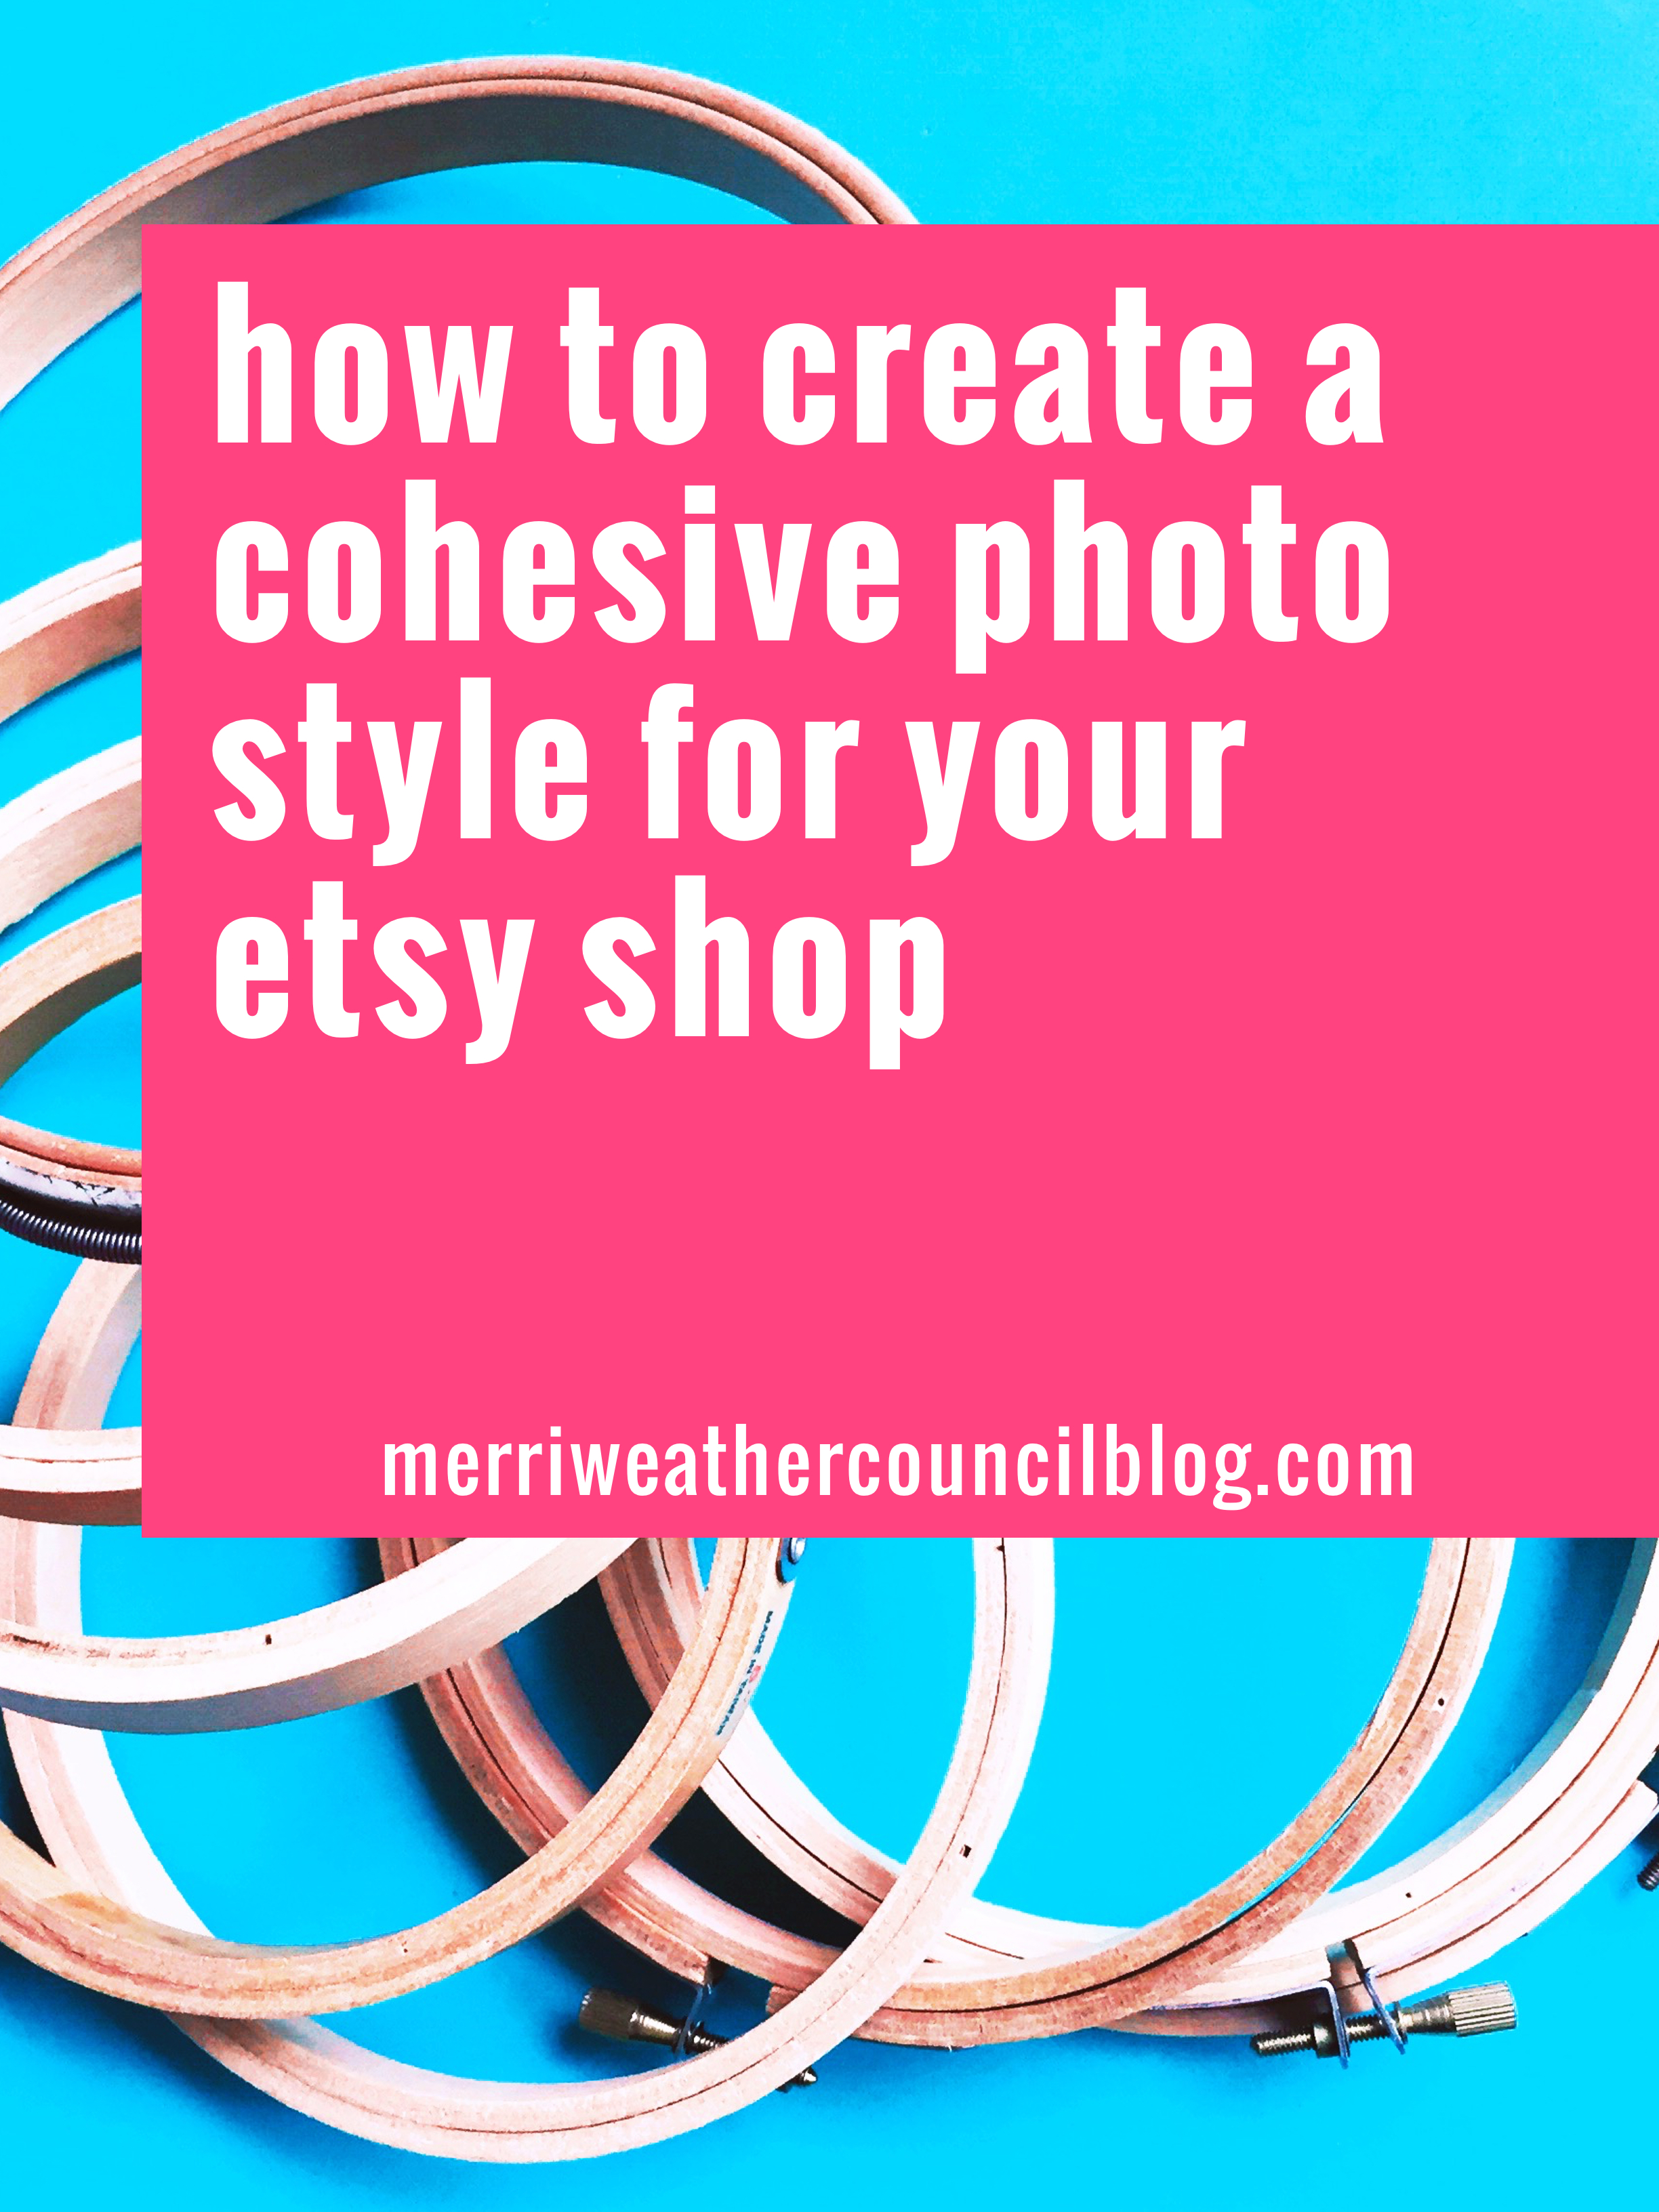 how to creative a cohesive photo style for your etsy shop | the merriweather council blog